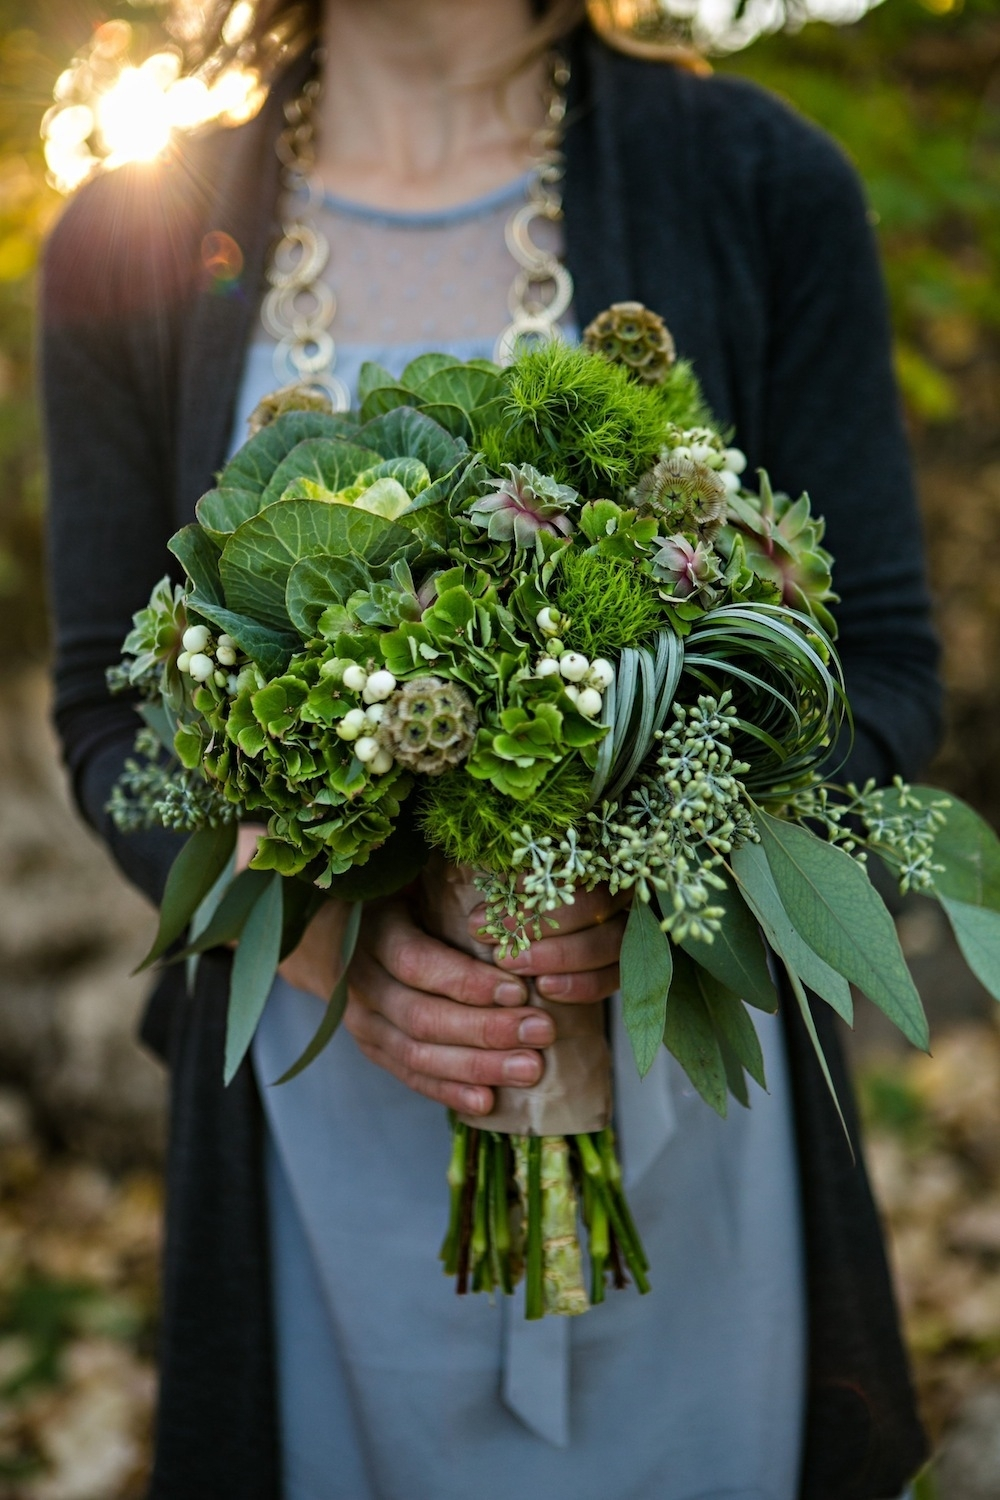 Wedding Flowers To Go With Green Dresses : Green wedding bouquet pictures photos and images for